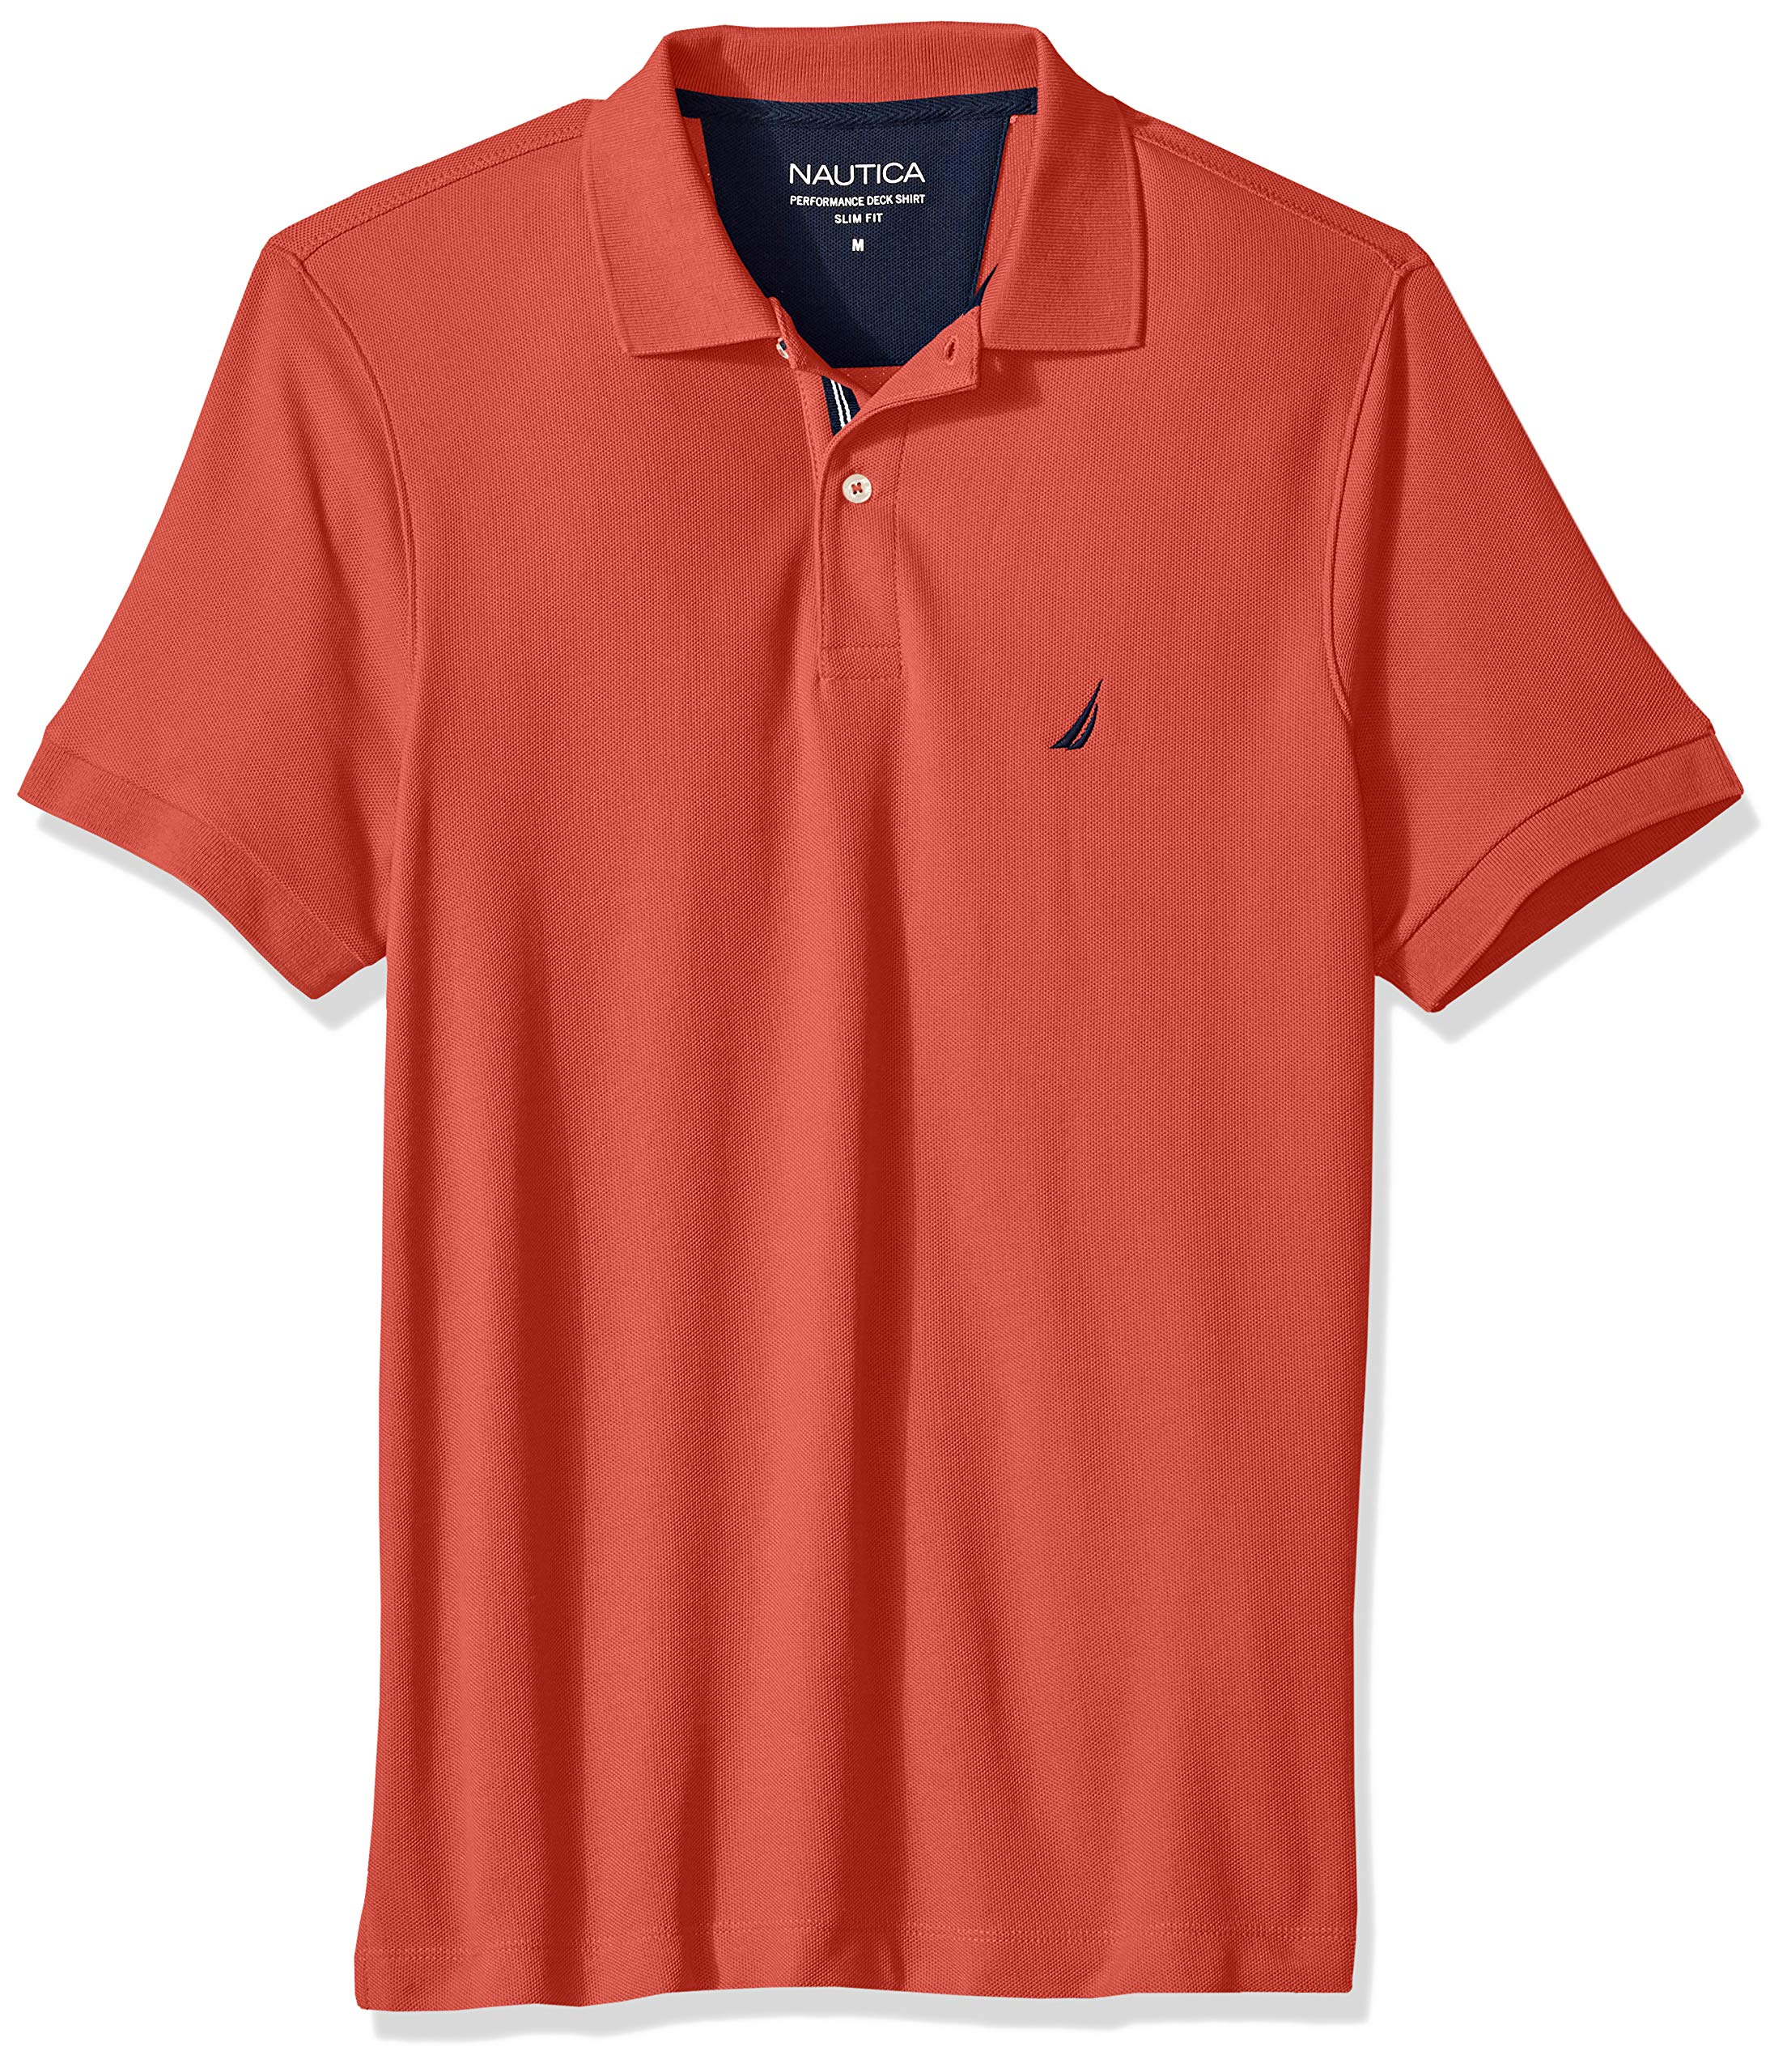 Nautica Men's Slim Fit Short Sleeve Solid Polo Shirt, Sunbaked Red, X-Large